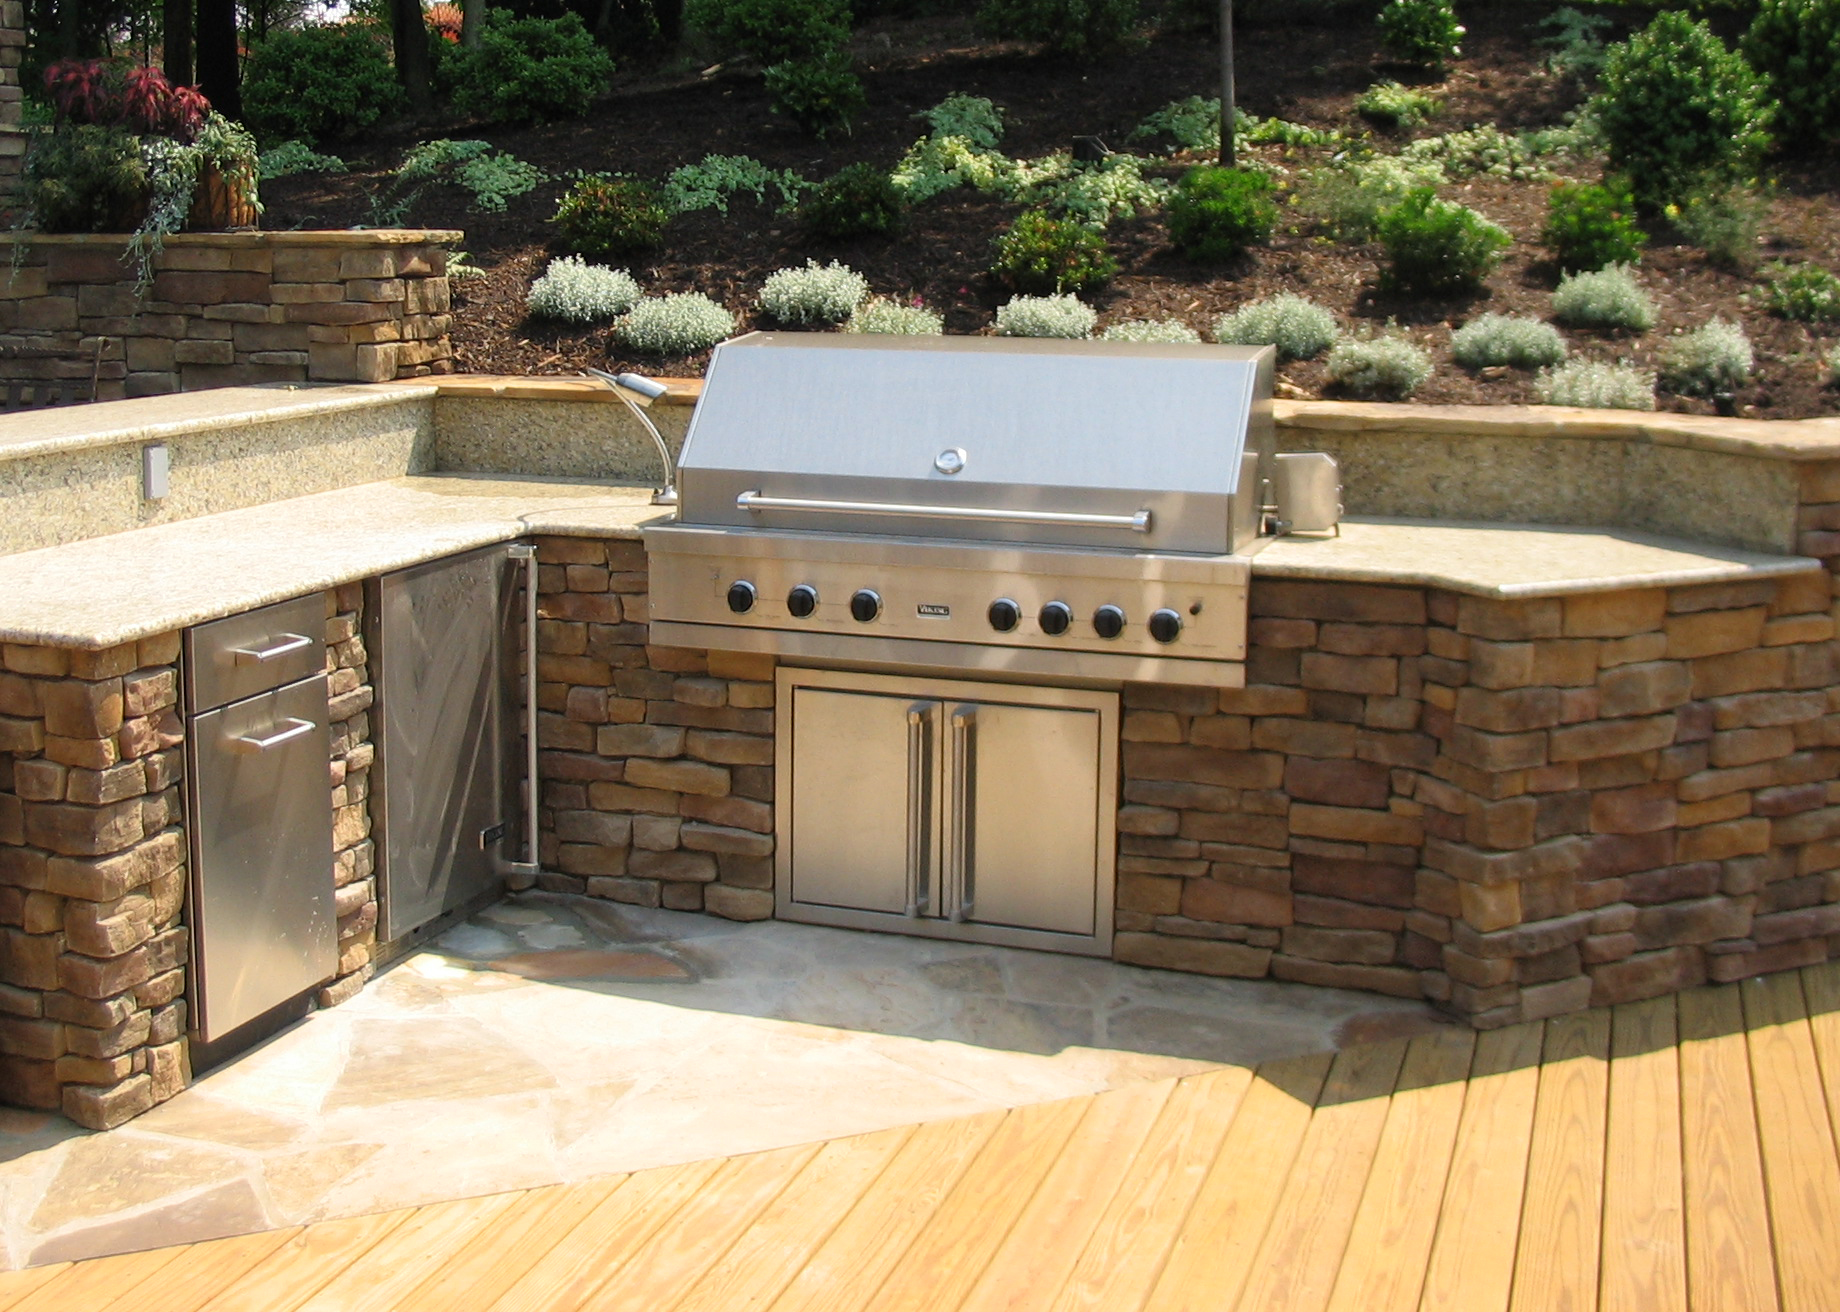 Designing an outdoor kitchen revolutionary gardens for Plans for outside kitchen